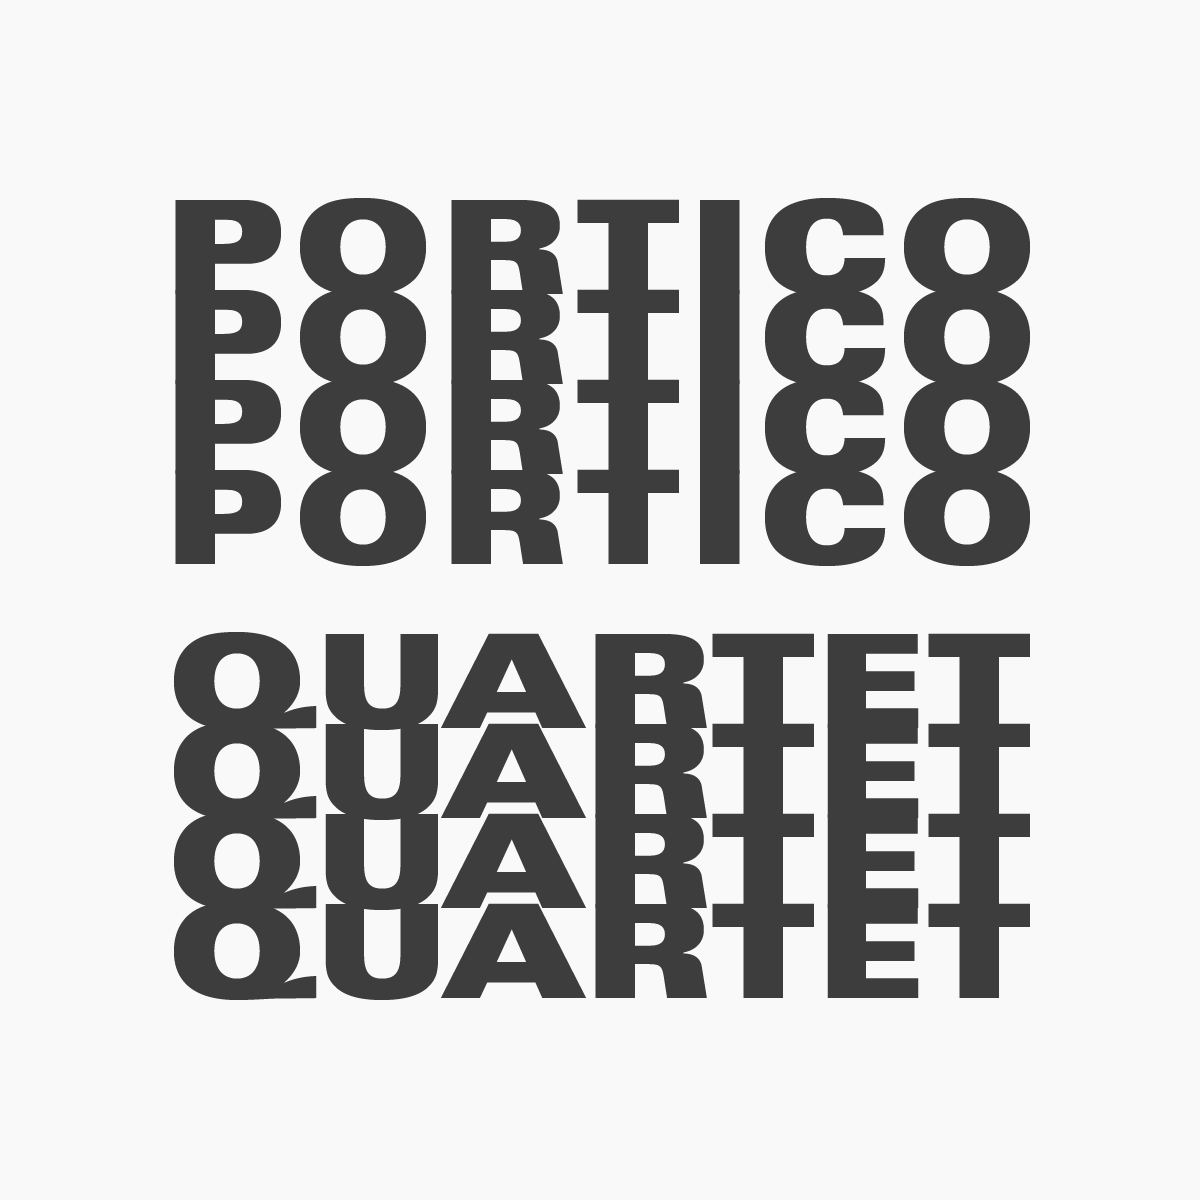 Listen to Portico Quartet's new single 'Endless'